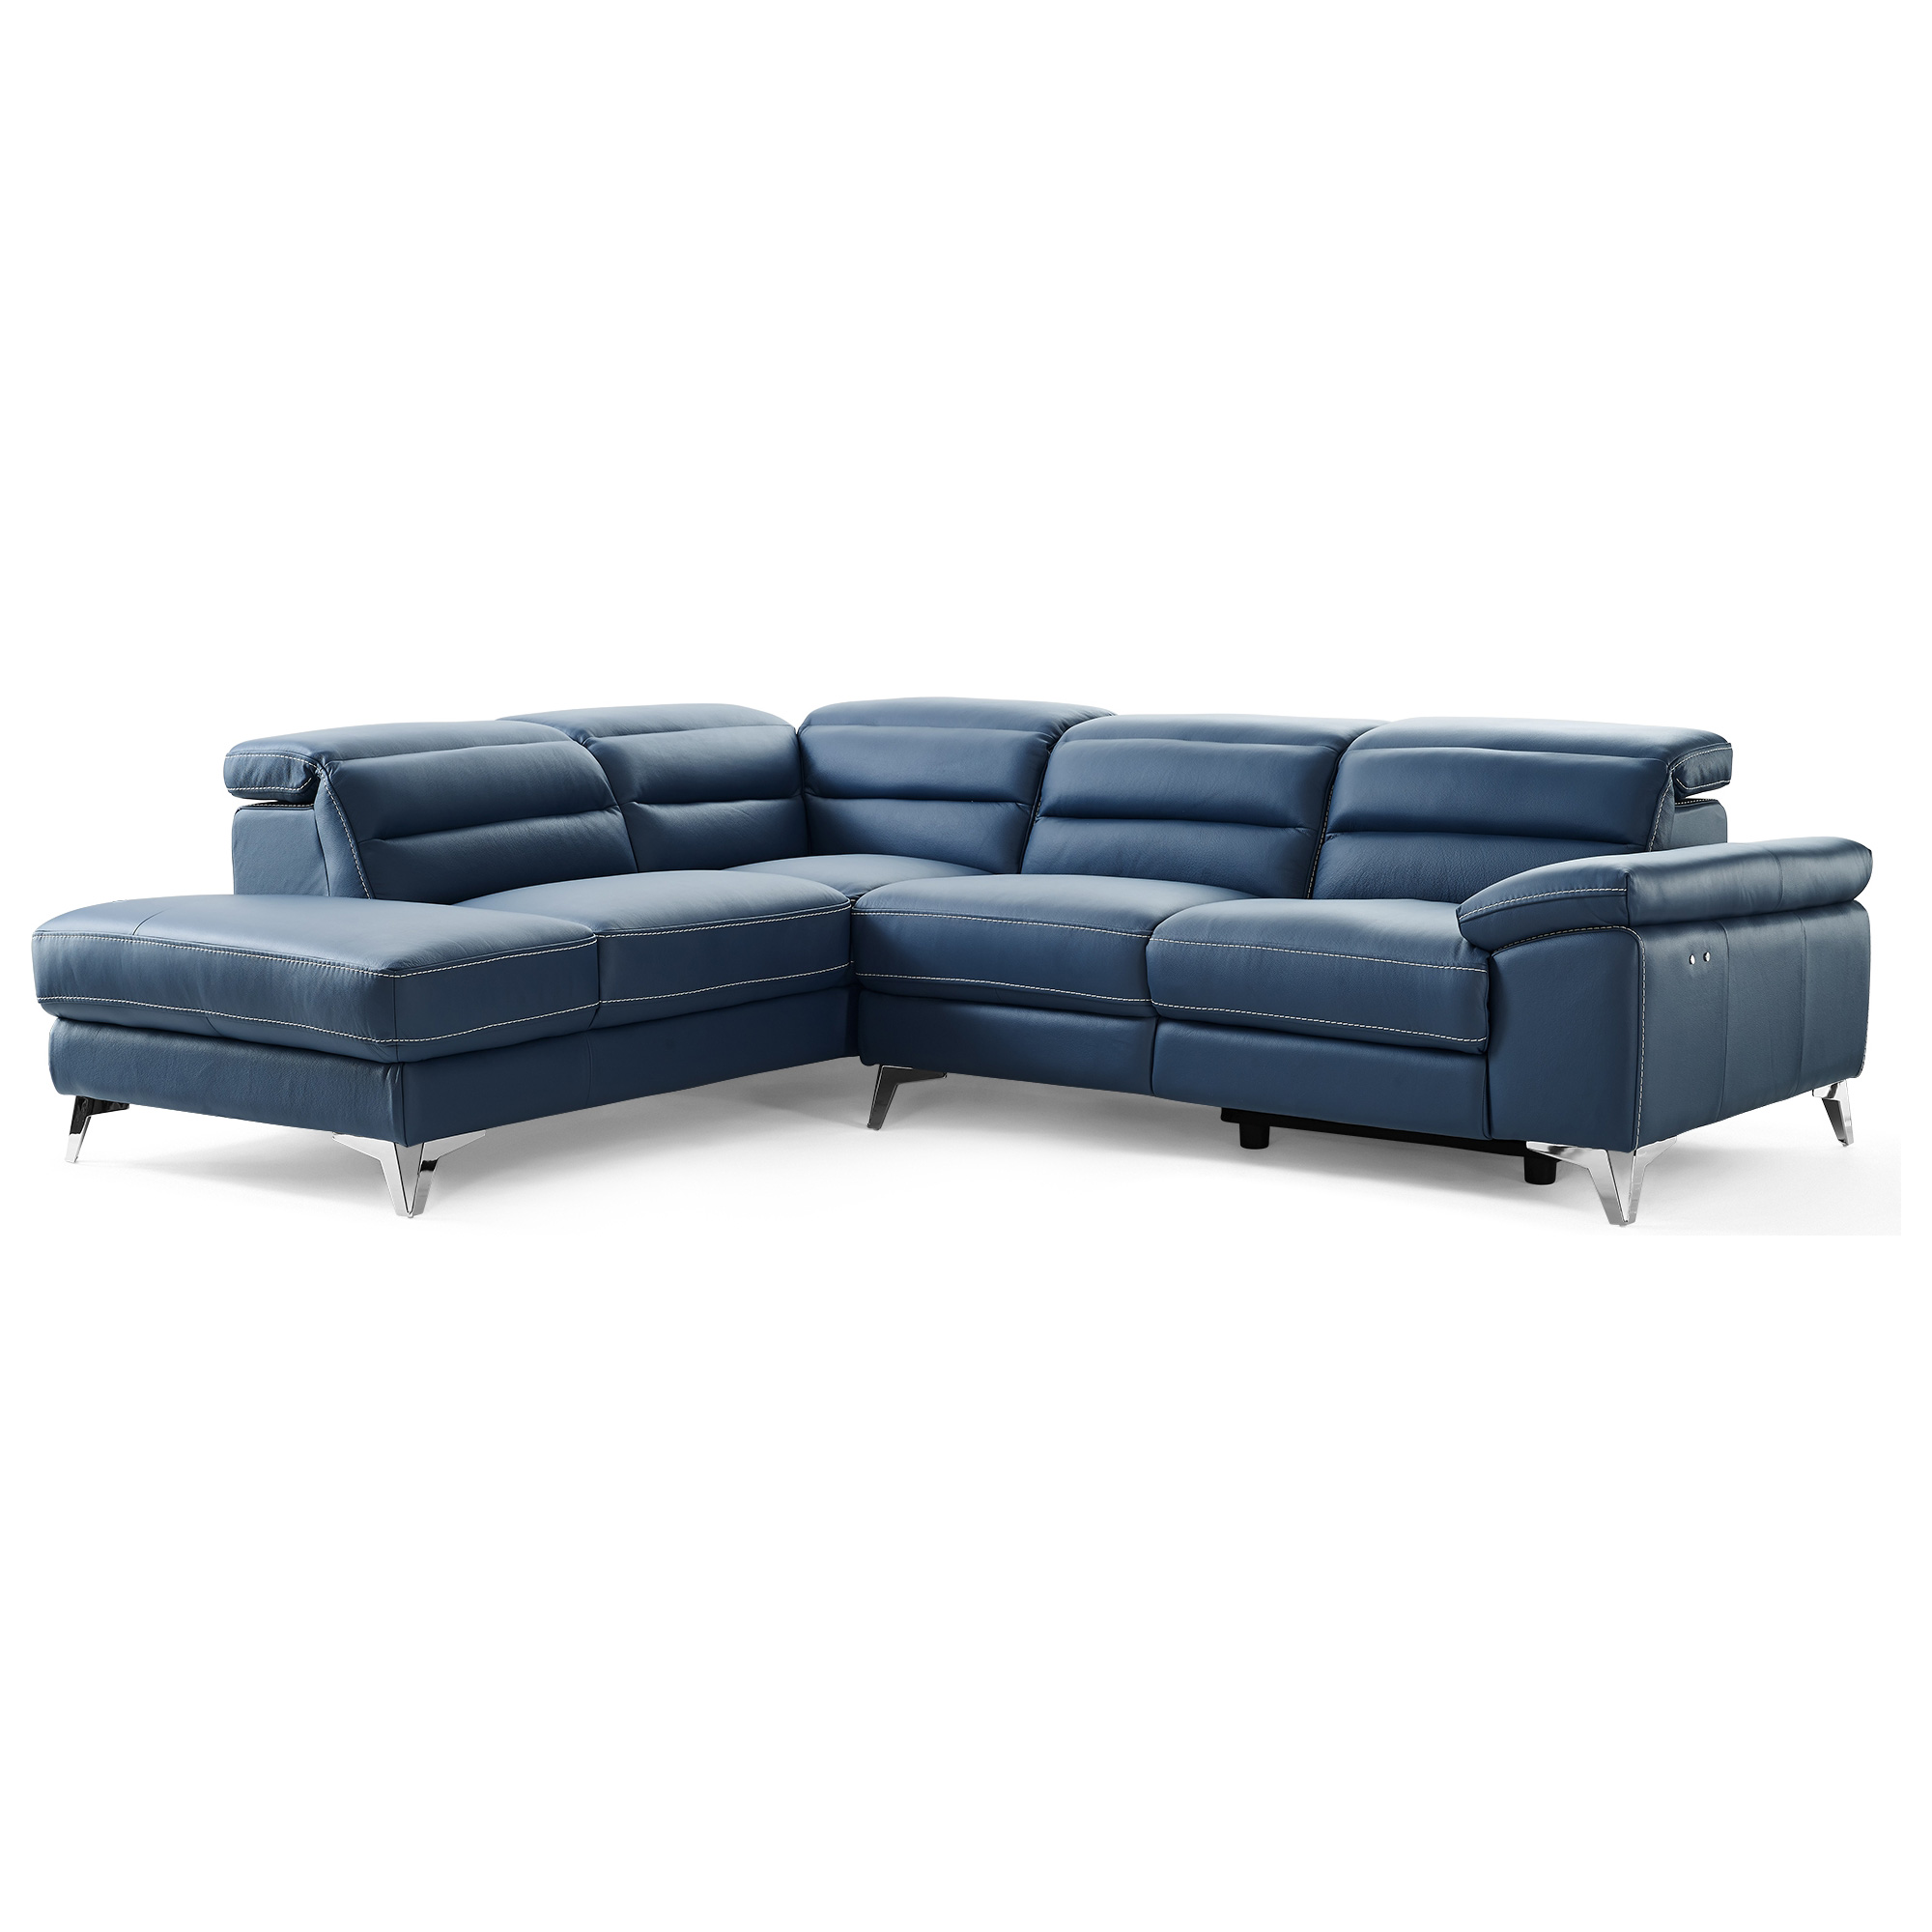 Whiteline Sl1349l Nvy Johnson Sectional Sofa W Chaise On Left In Navy Blue Top Grain Italian Leather On Stainless Legs